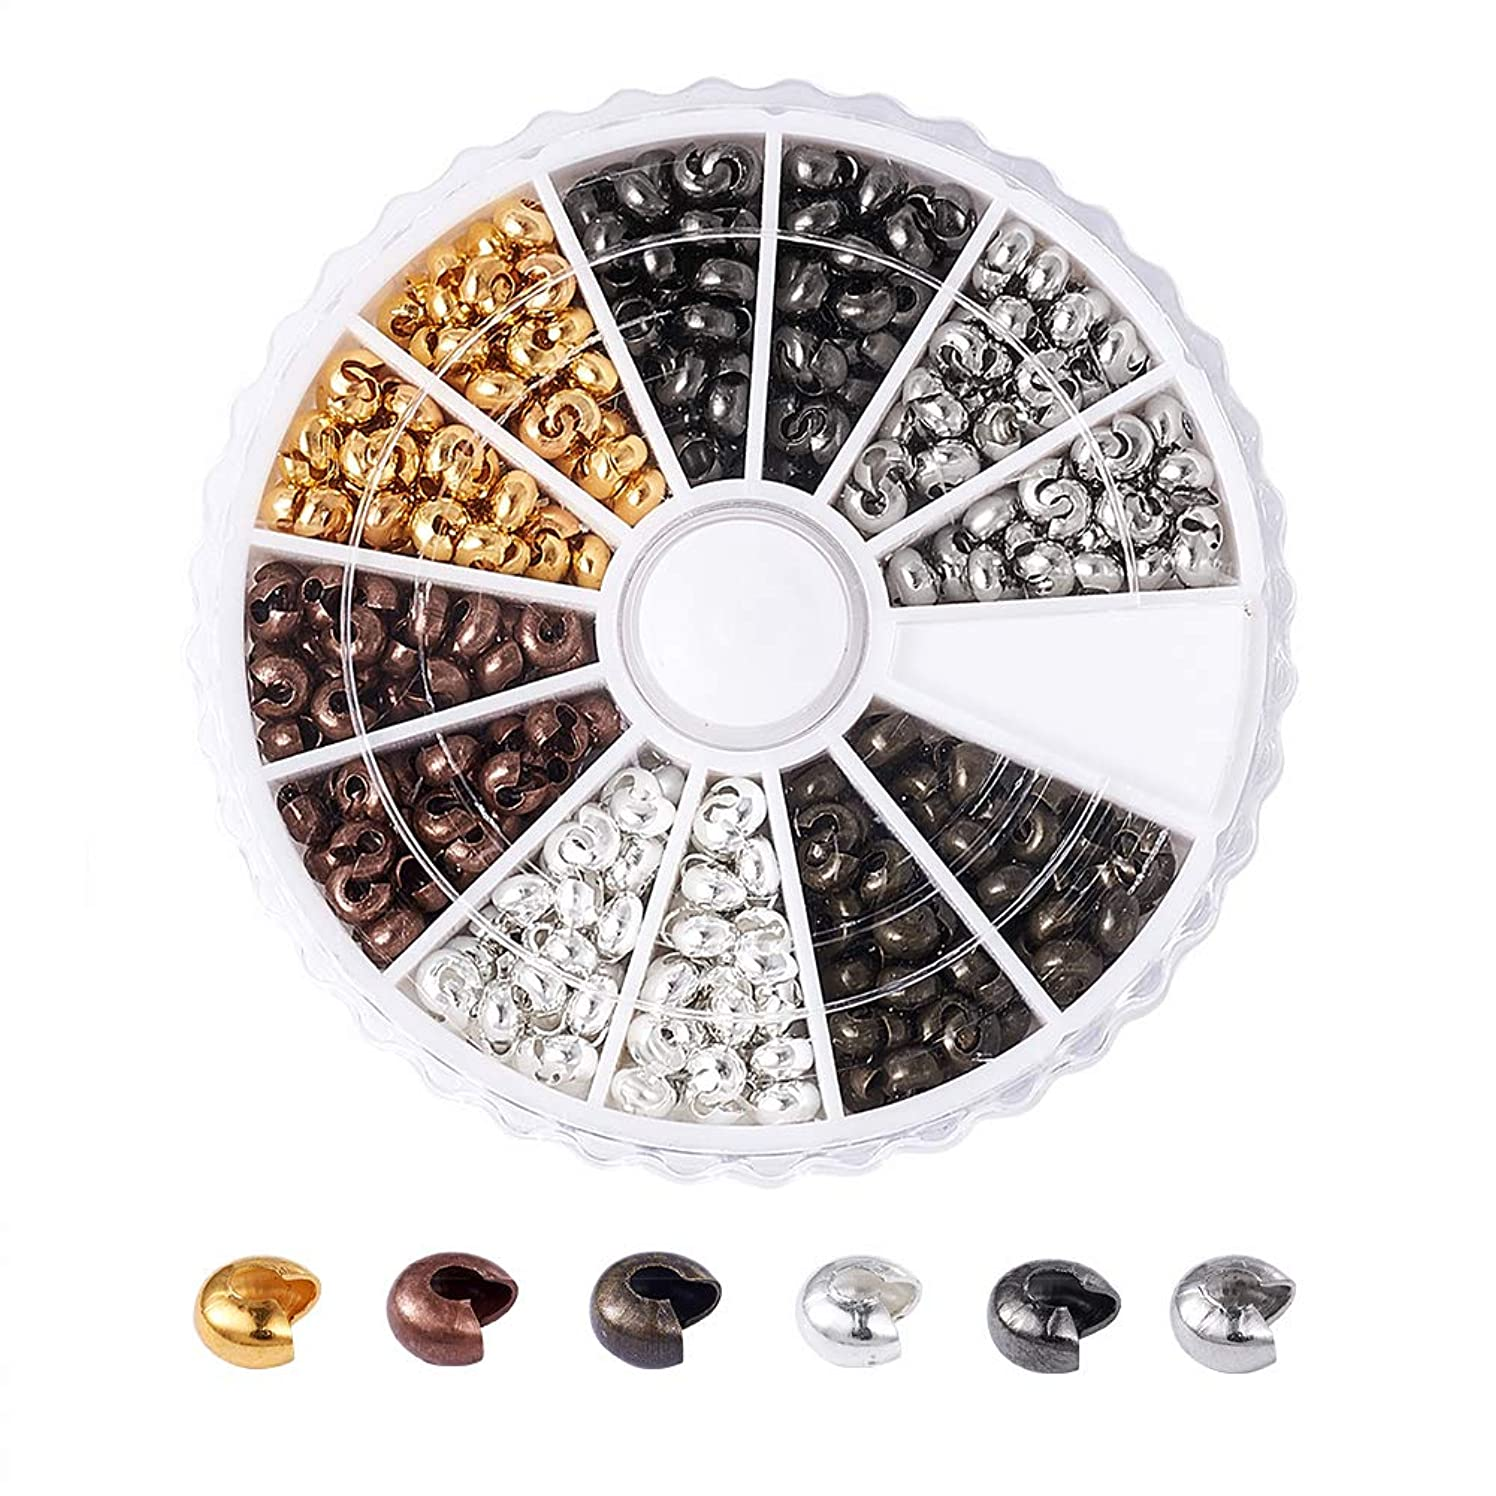 Pandahall 6 Colors Brass Crimp Beads Knot Covers 3mm Cadmium Free & Lead Free & Nickel Free DIY Jewelry Making Findings About 590pcs/box